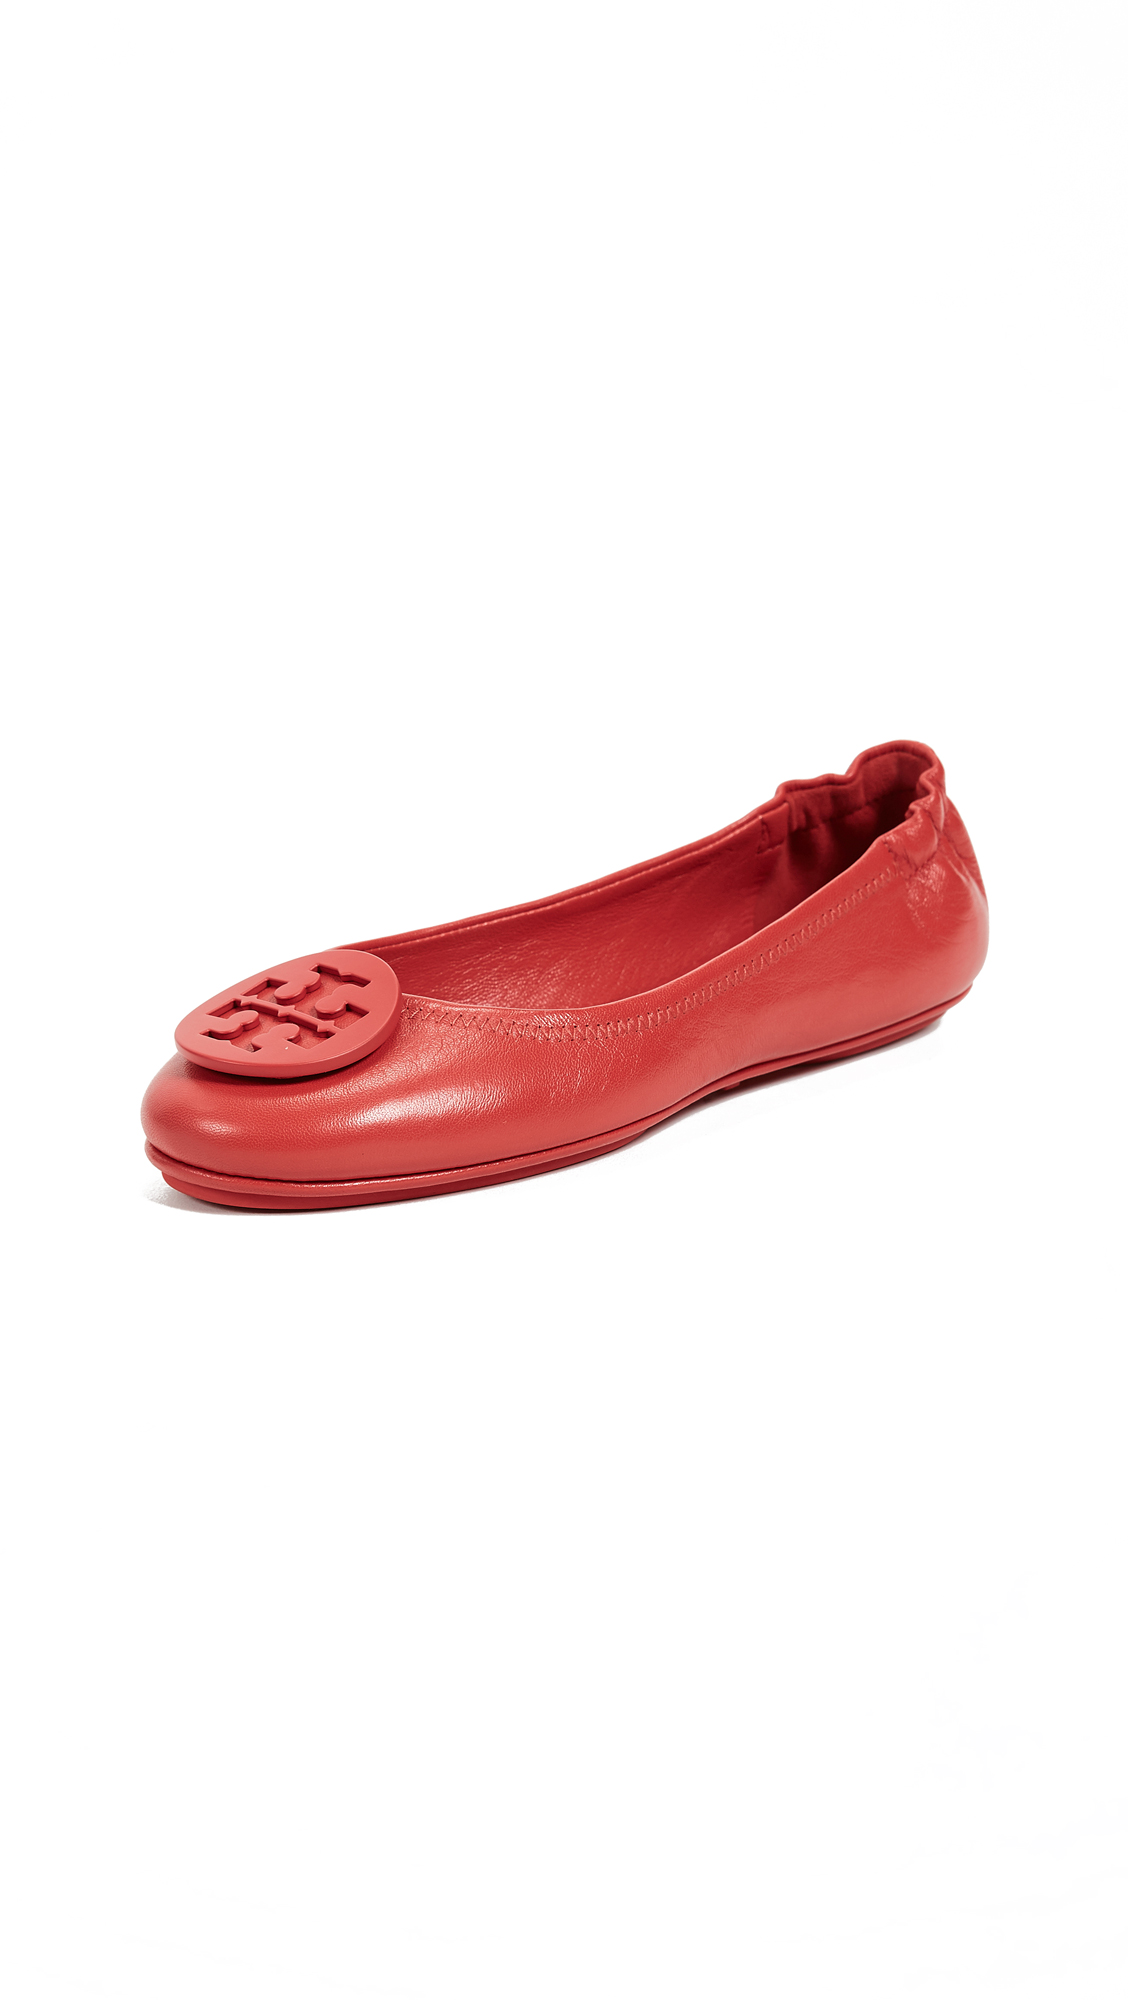 Tory Burch Minnie Travel Ballet Flats with Logo - Poppy Orange